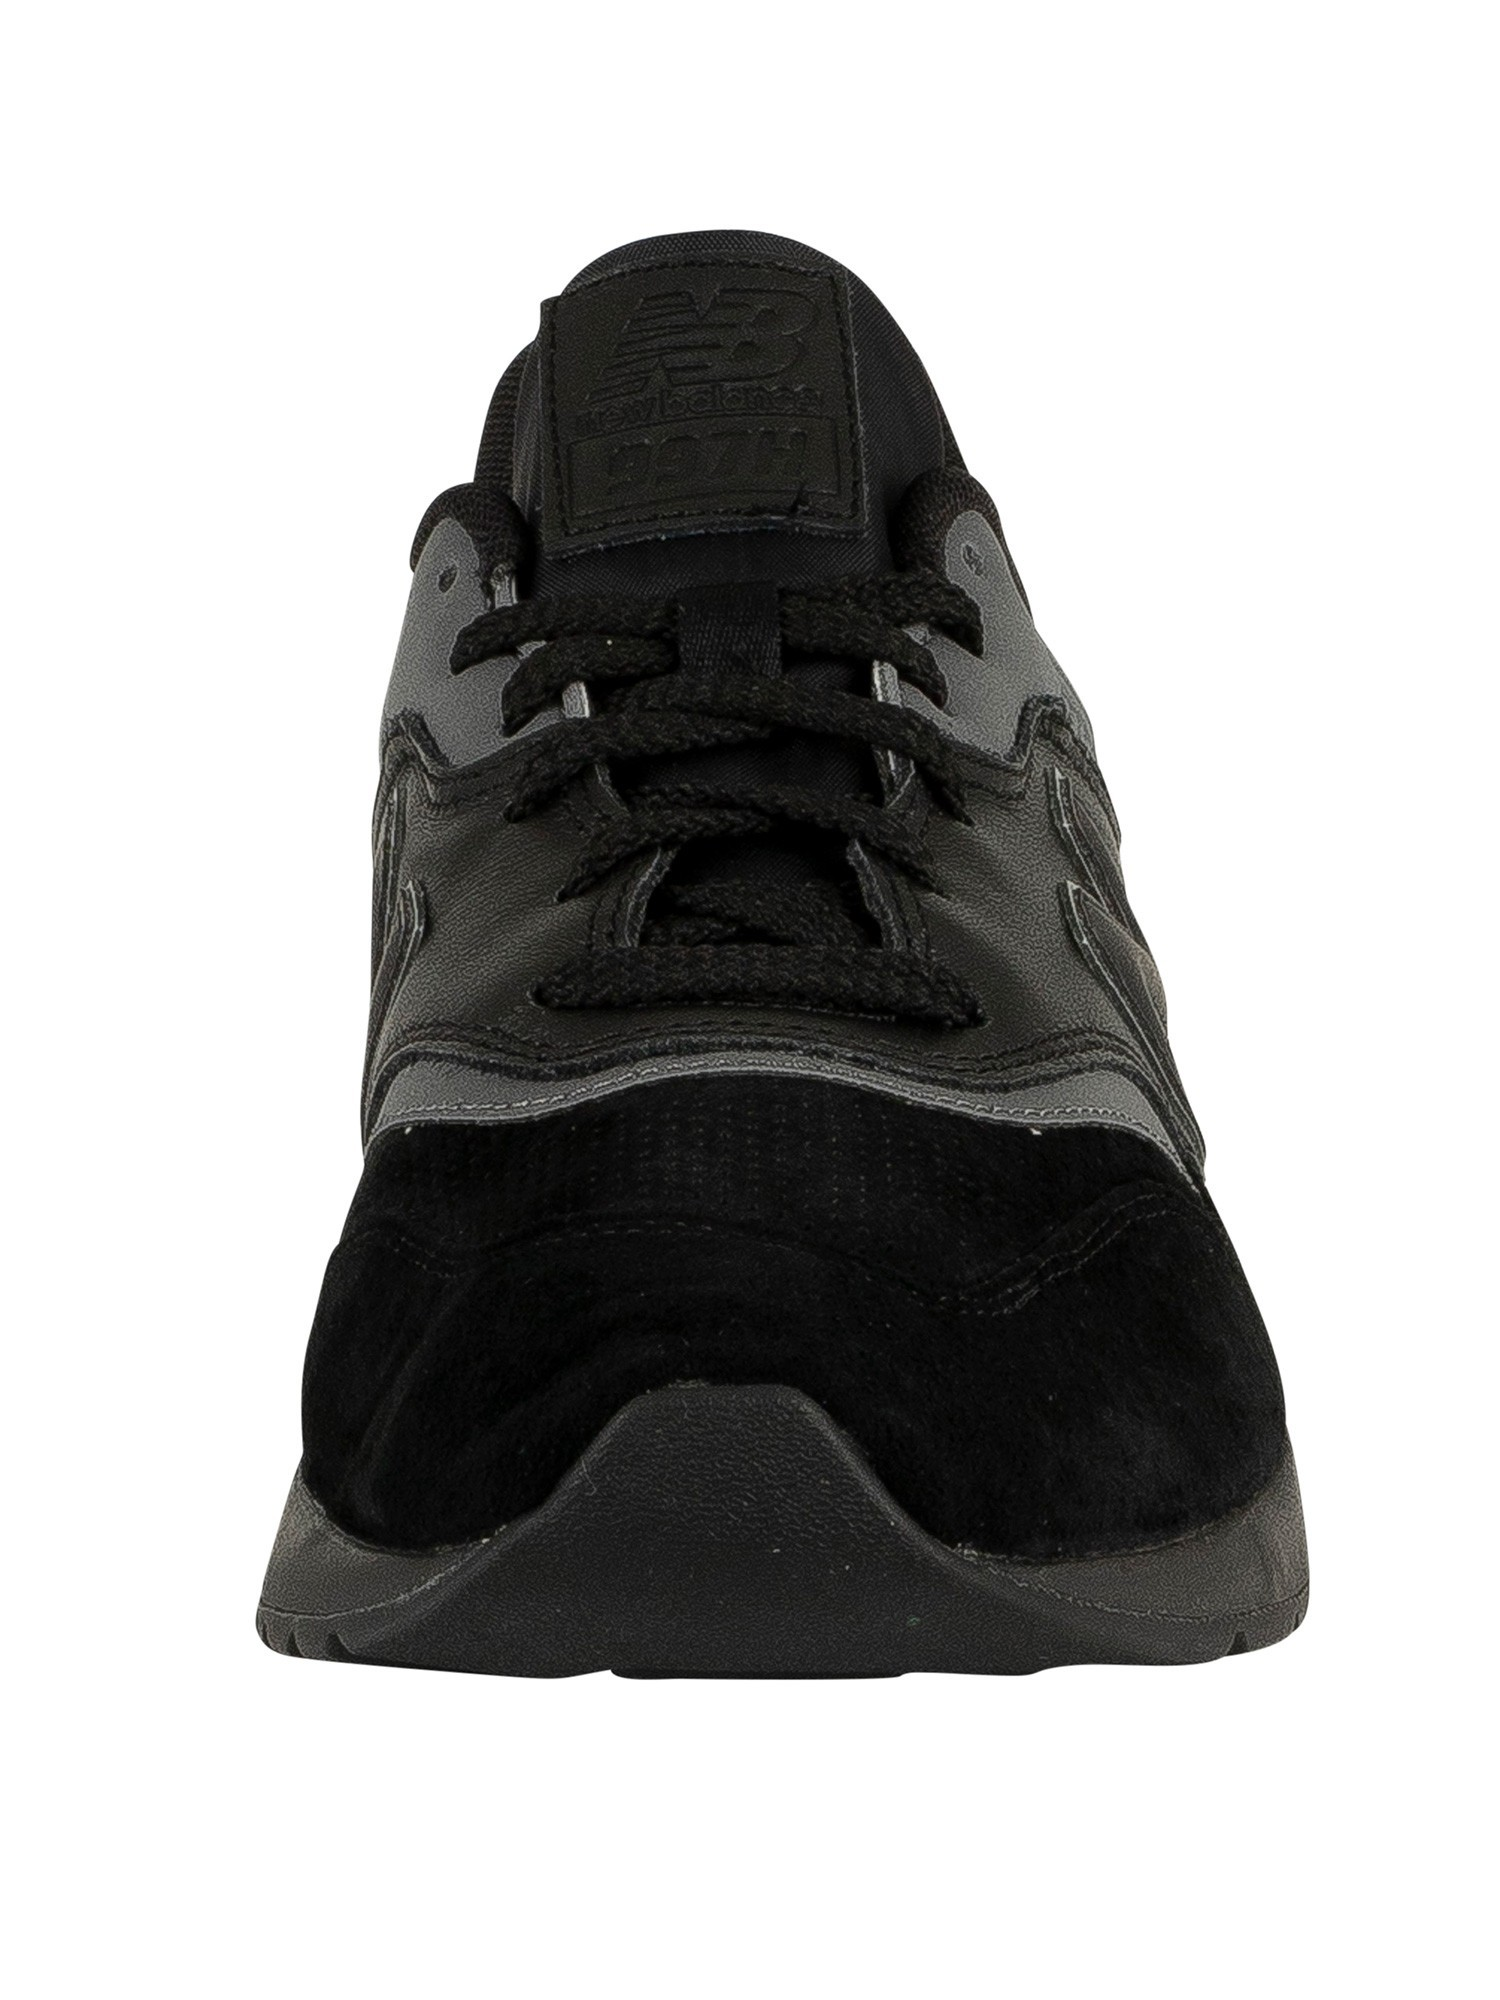 wholesale dealer 918b5 cf52e New Balance 997 Leather Trainers - Black/Castlerock